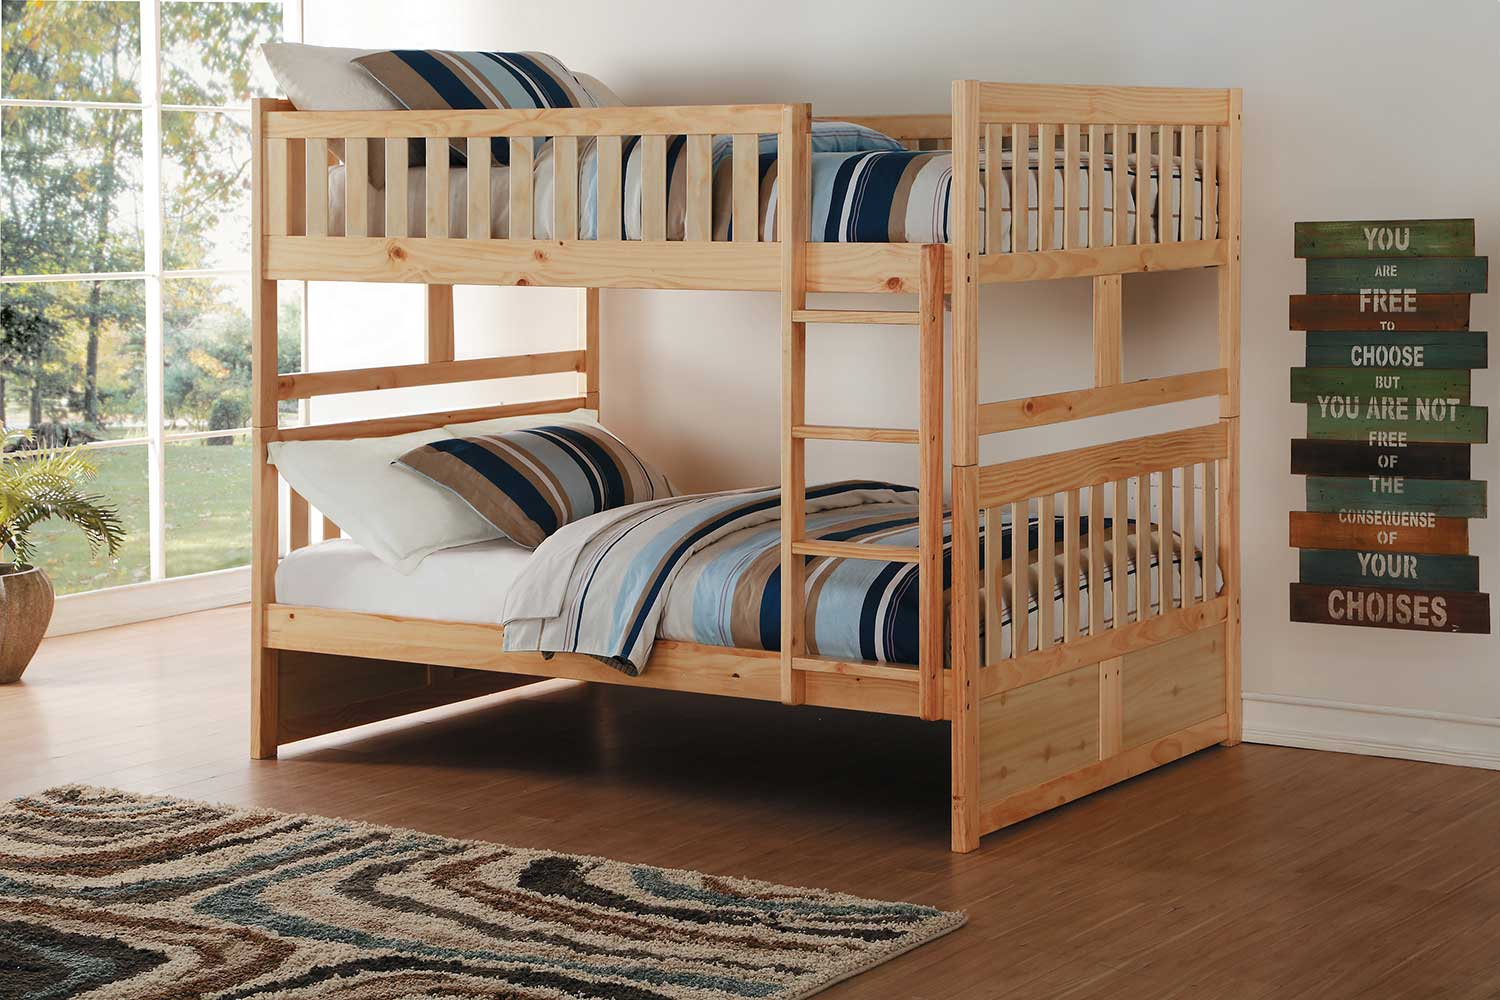 Homelegance Bartly Full over Full Bunk Bed - Natural Pine